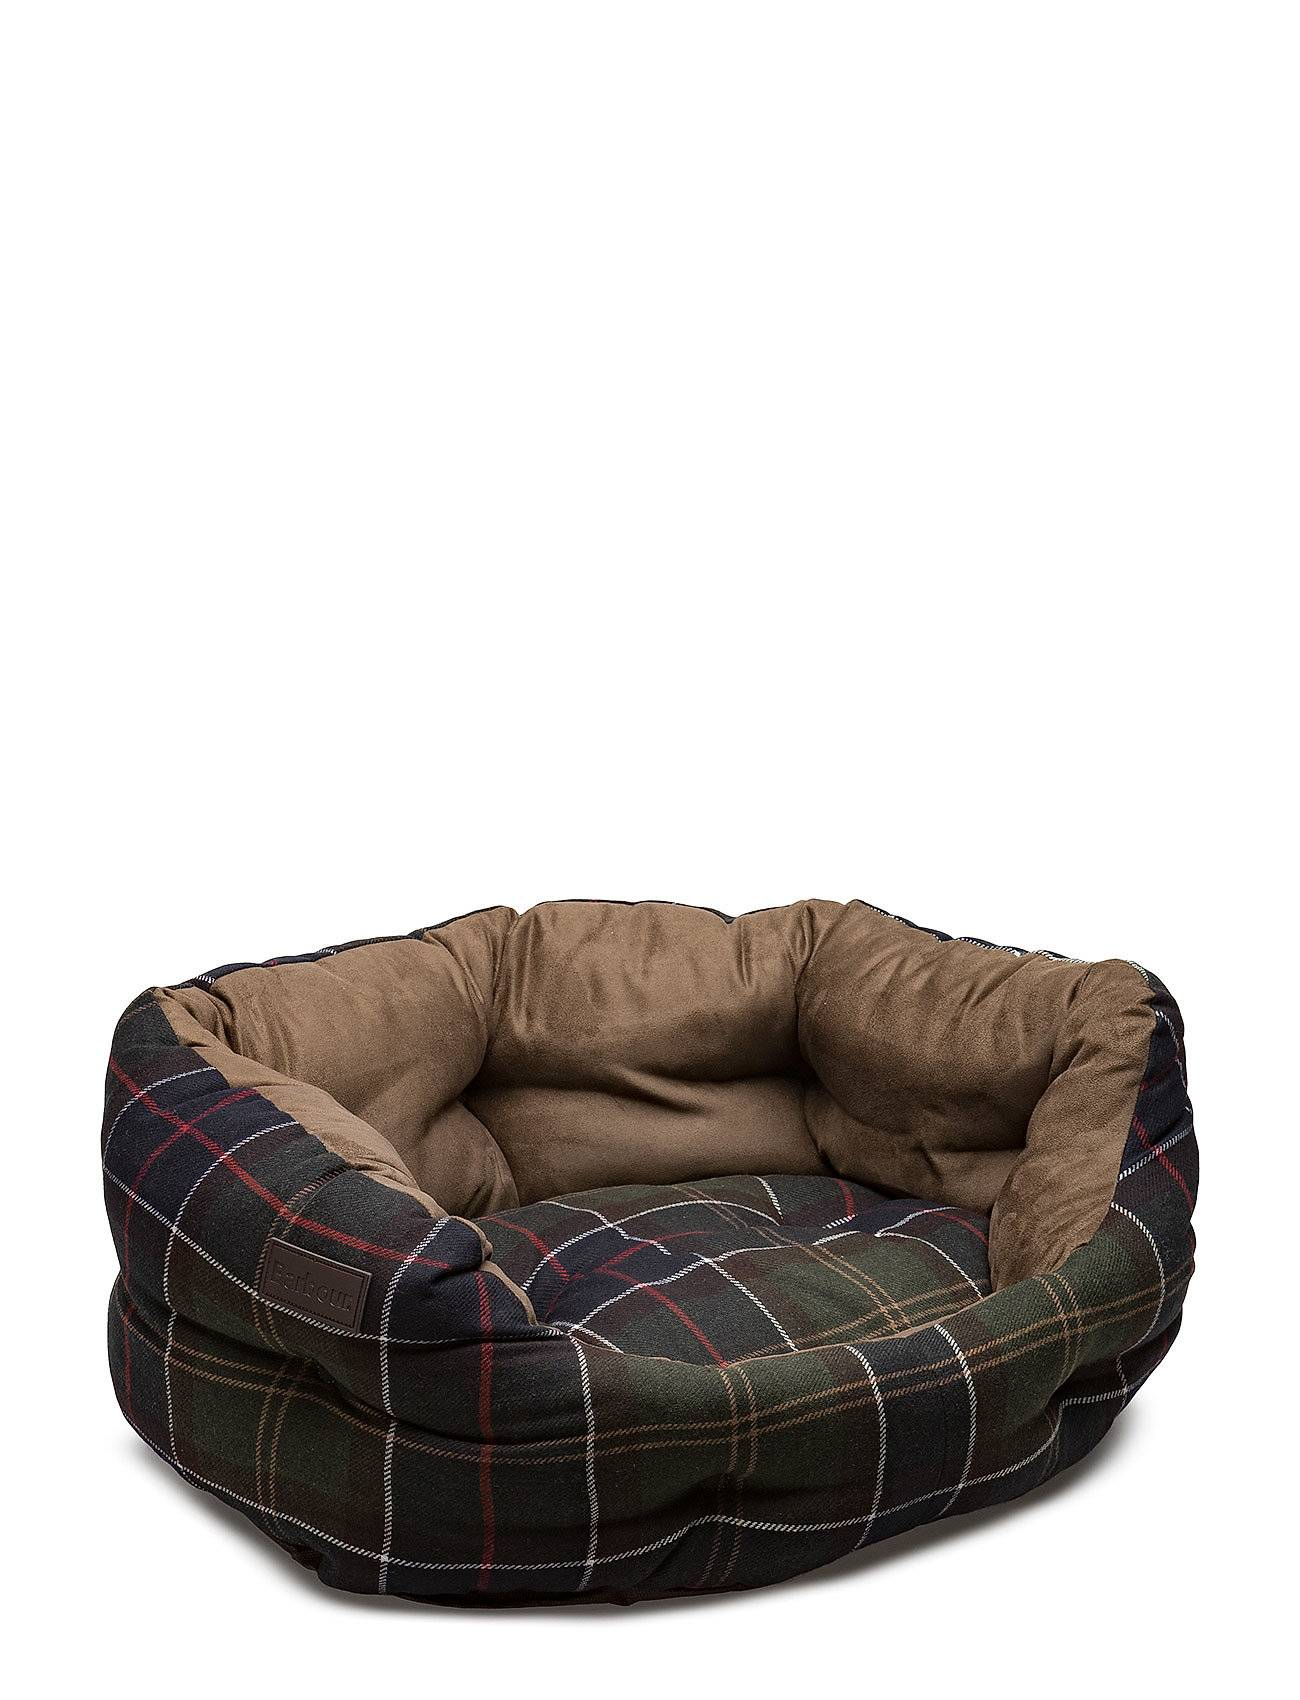 Barbour 24in Luxury Dog Bed